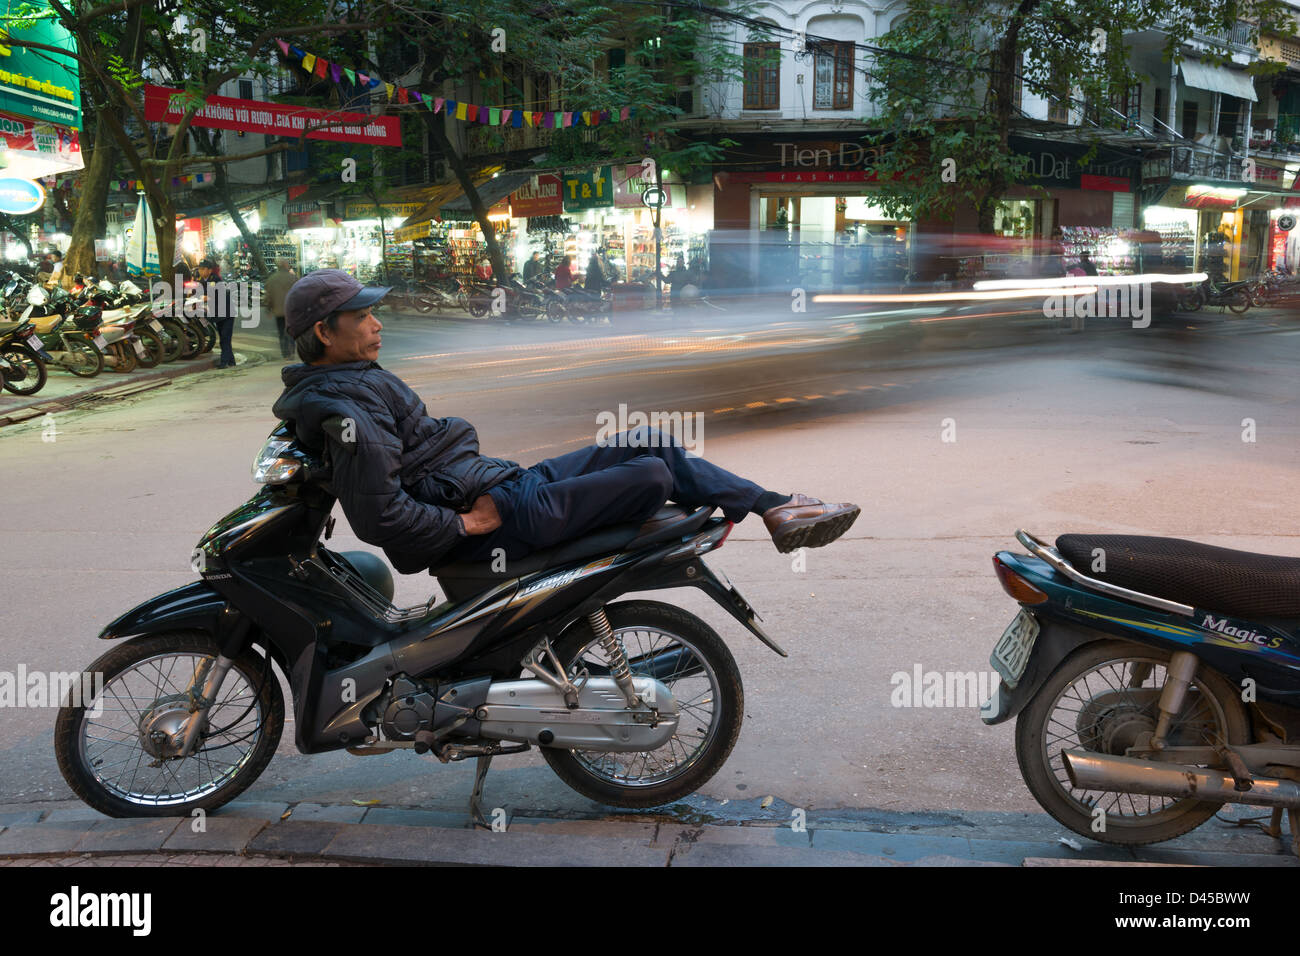 Moto taxi driver relaxing on his motorbike as traffic passes on Lo Su, in the Old Quarter of Hanoi, Vietnam - Stock Image